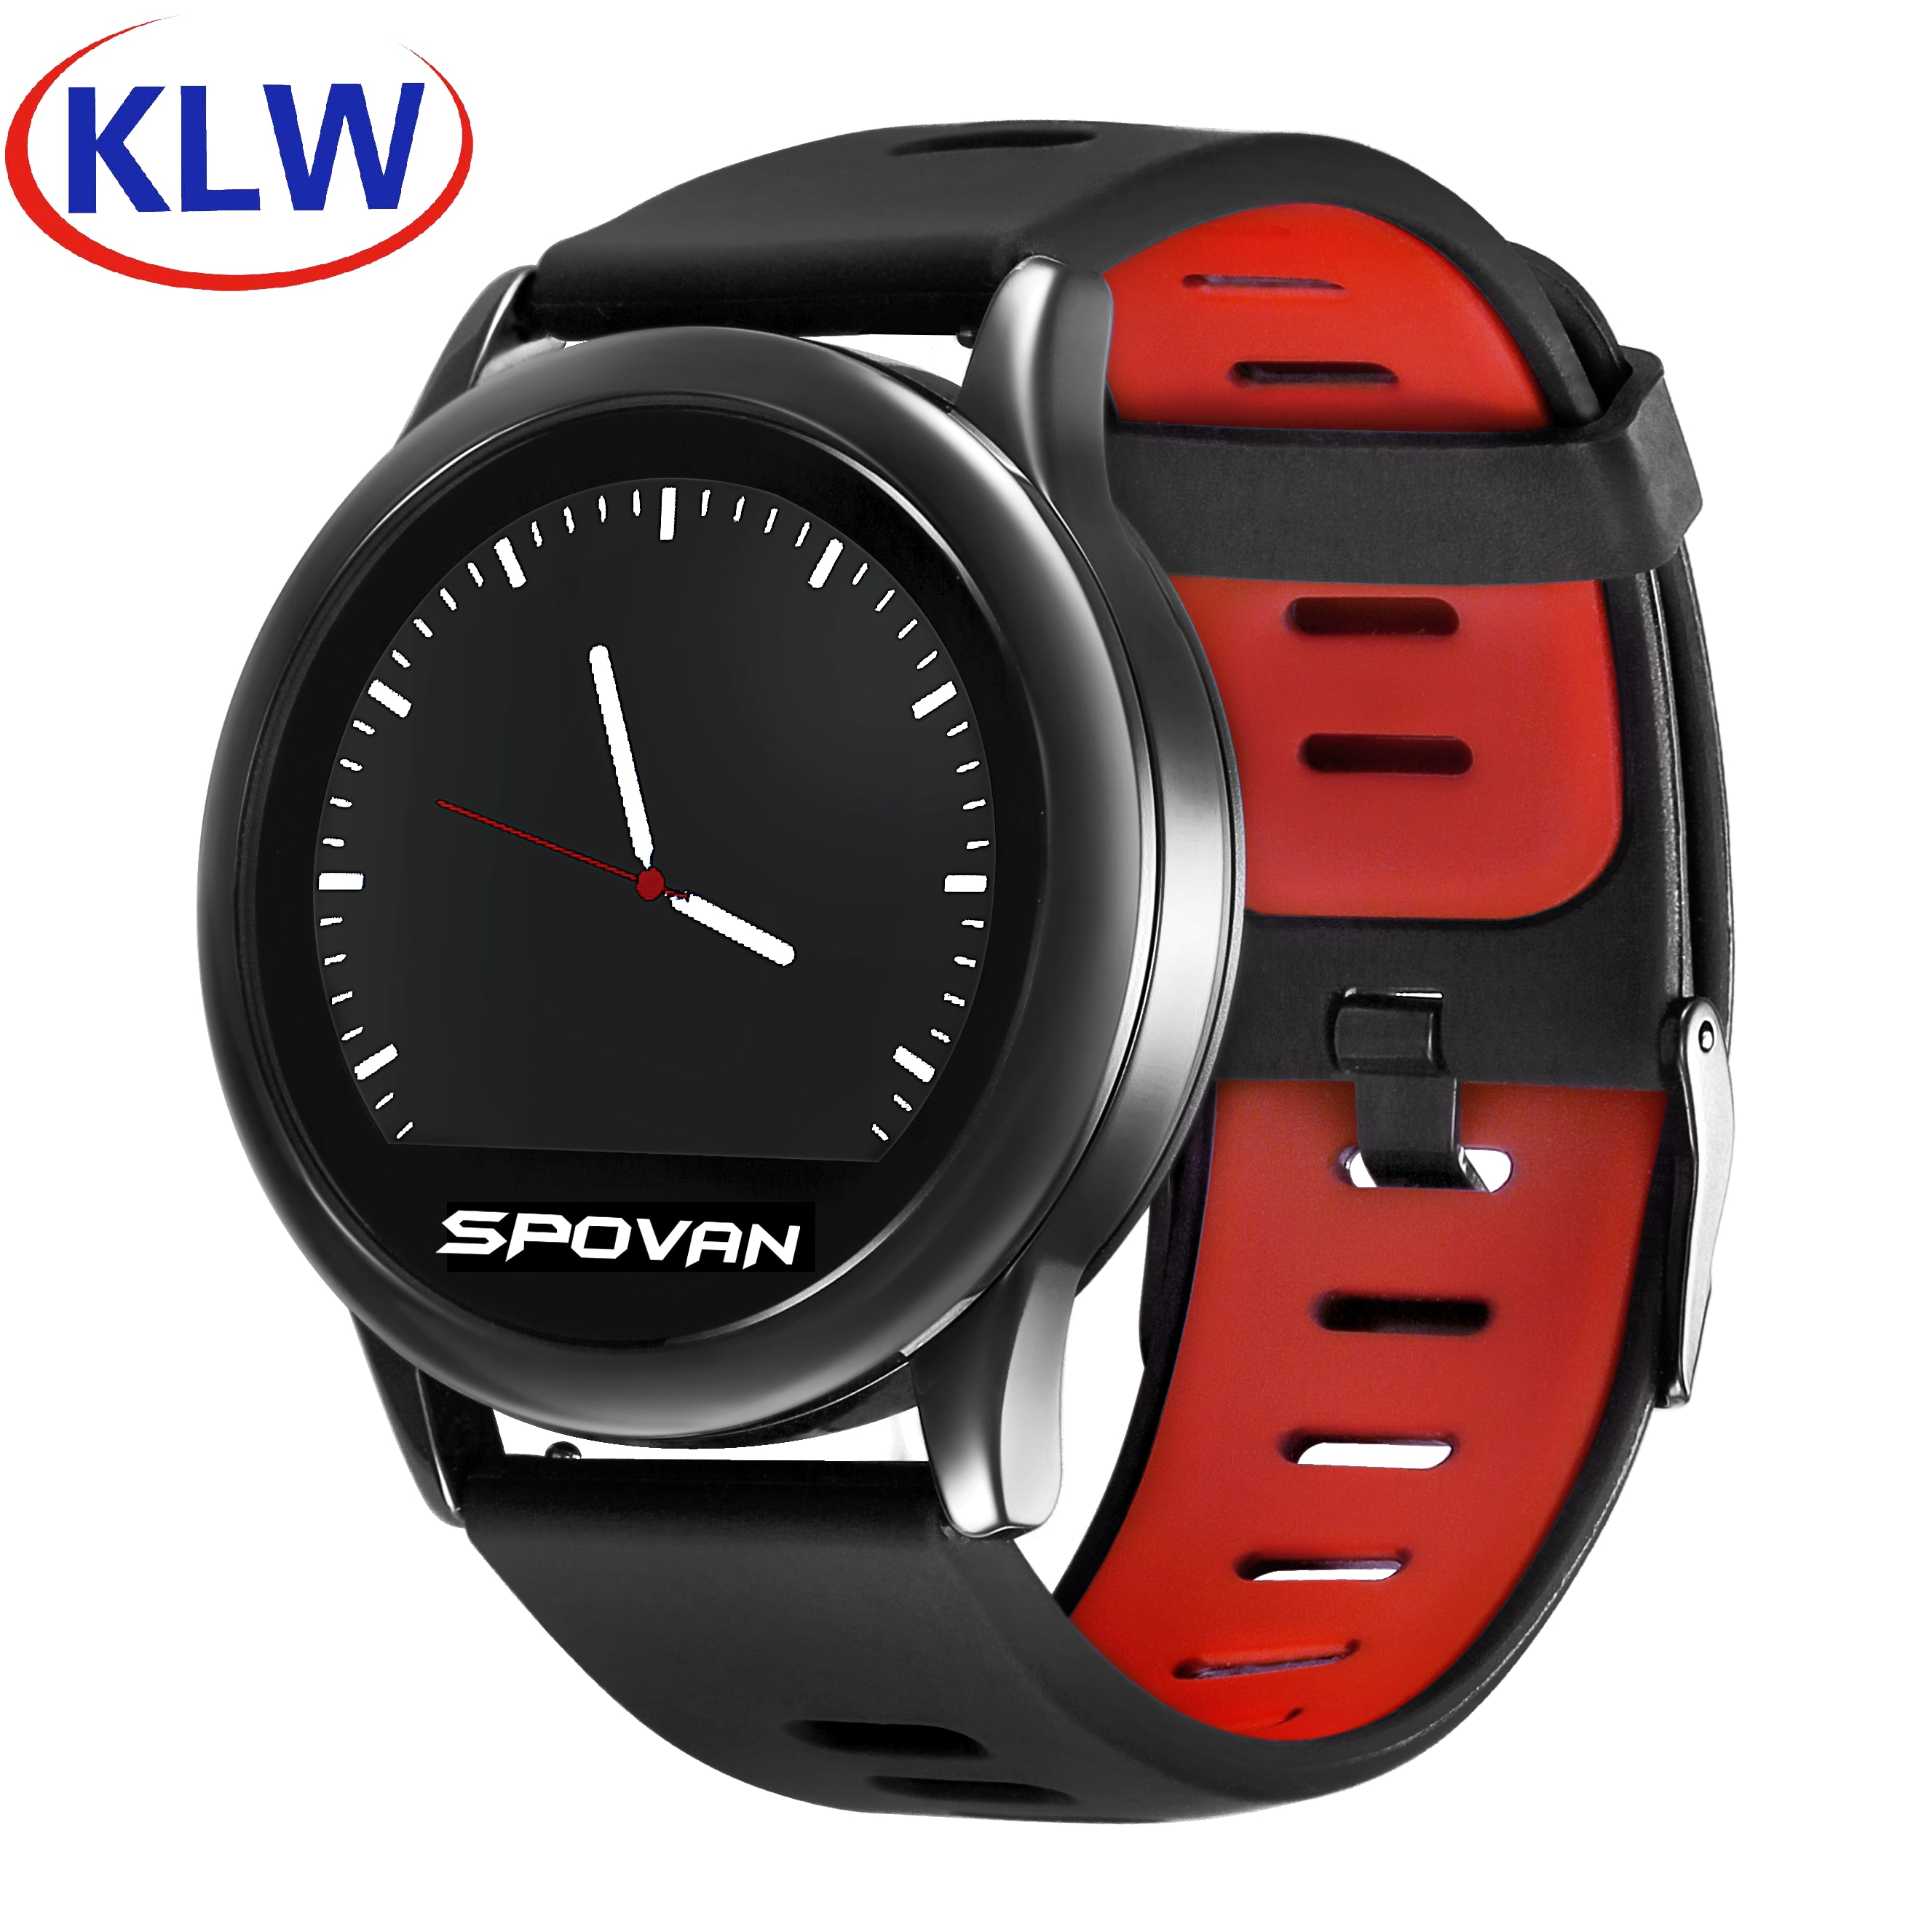 IP67 waterproof dual cpus sports Smart watch SW001 smart step counter Android Bluetooth IOS long standby sports watch